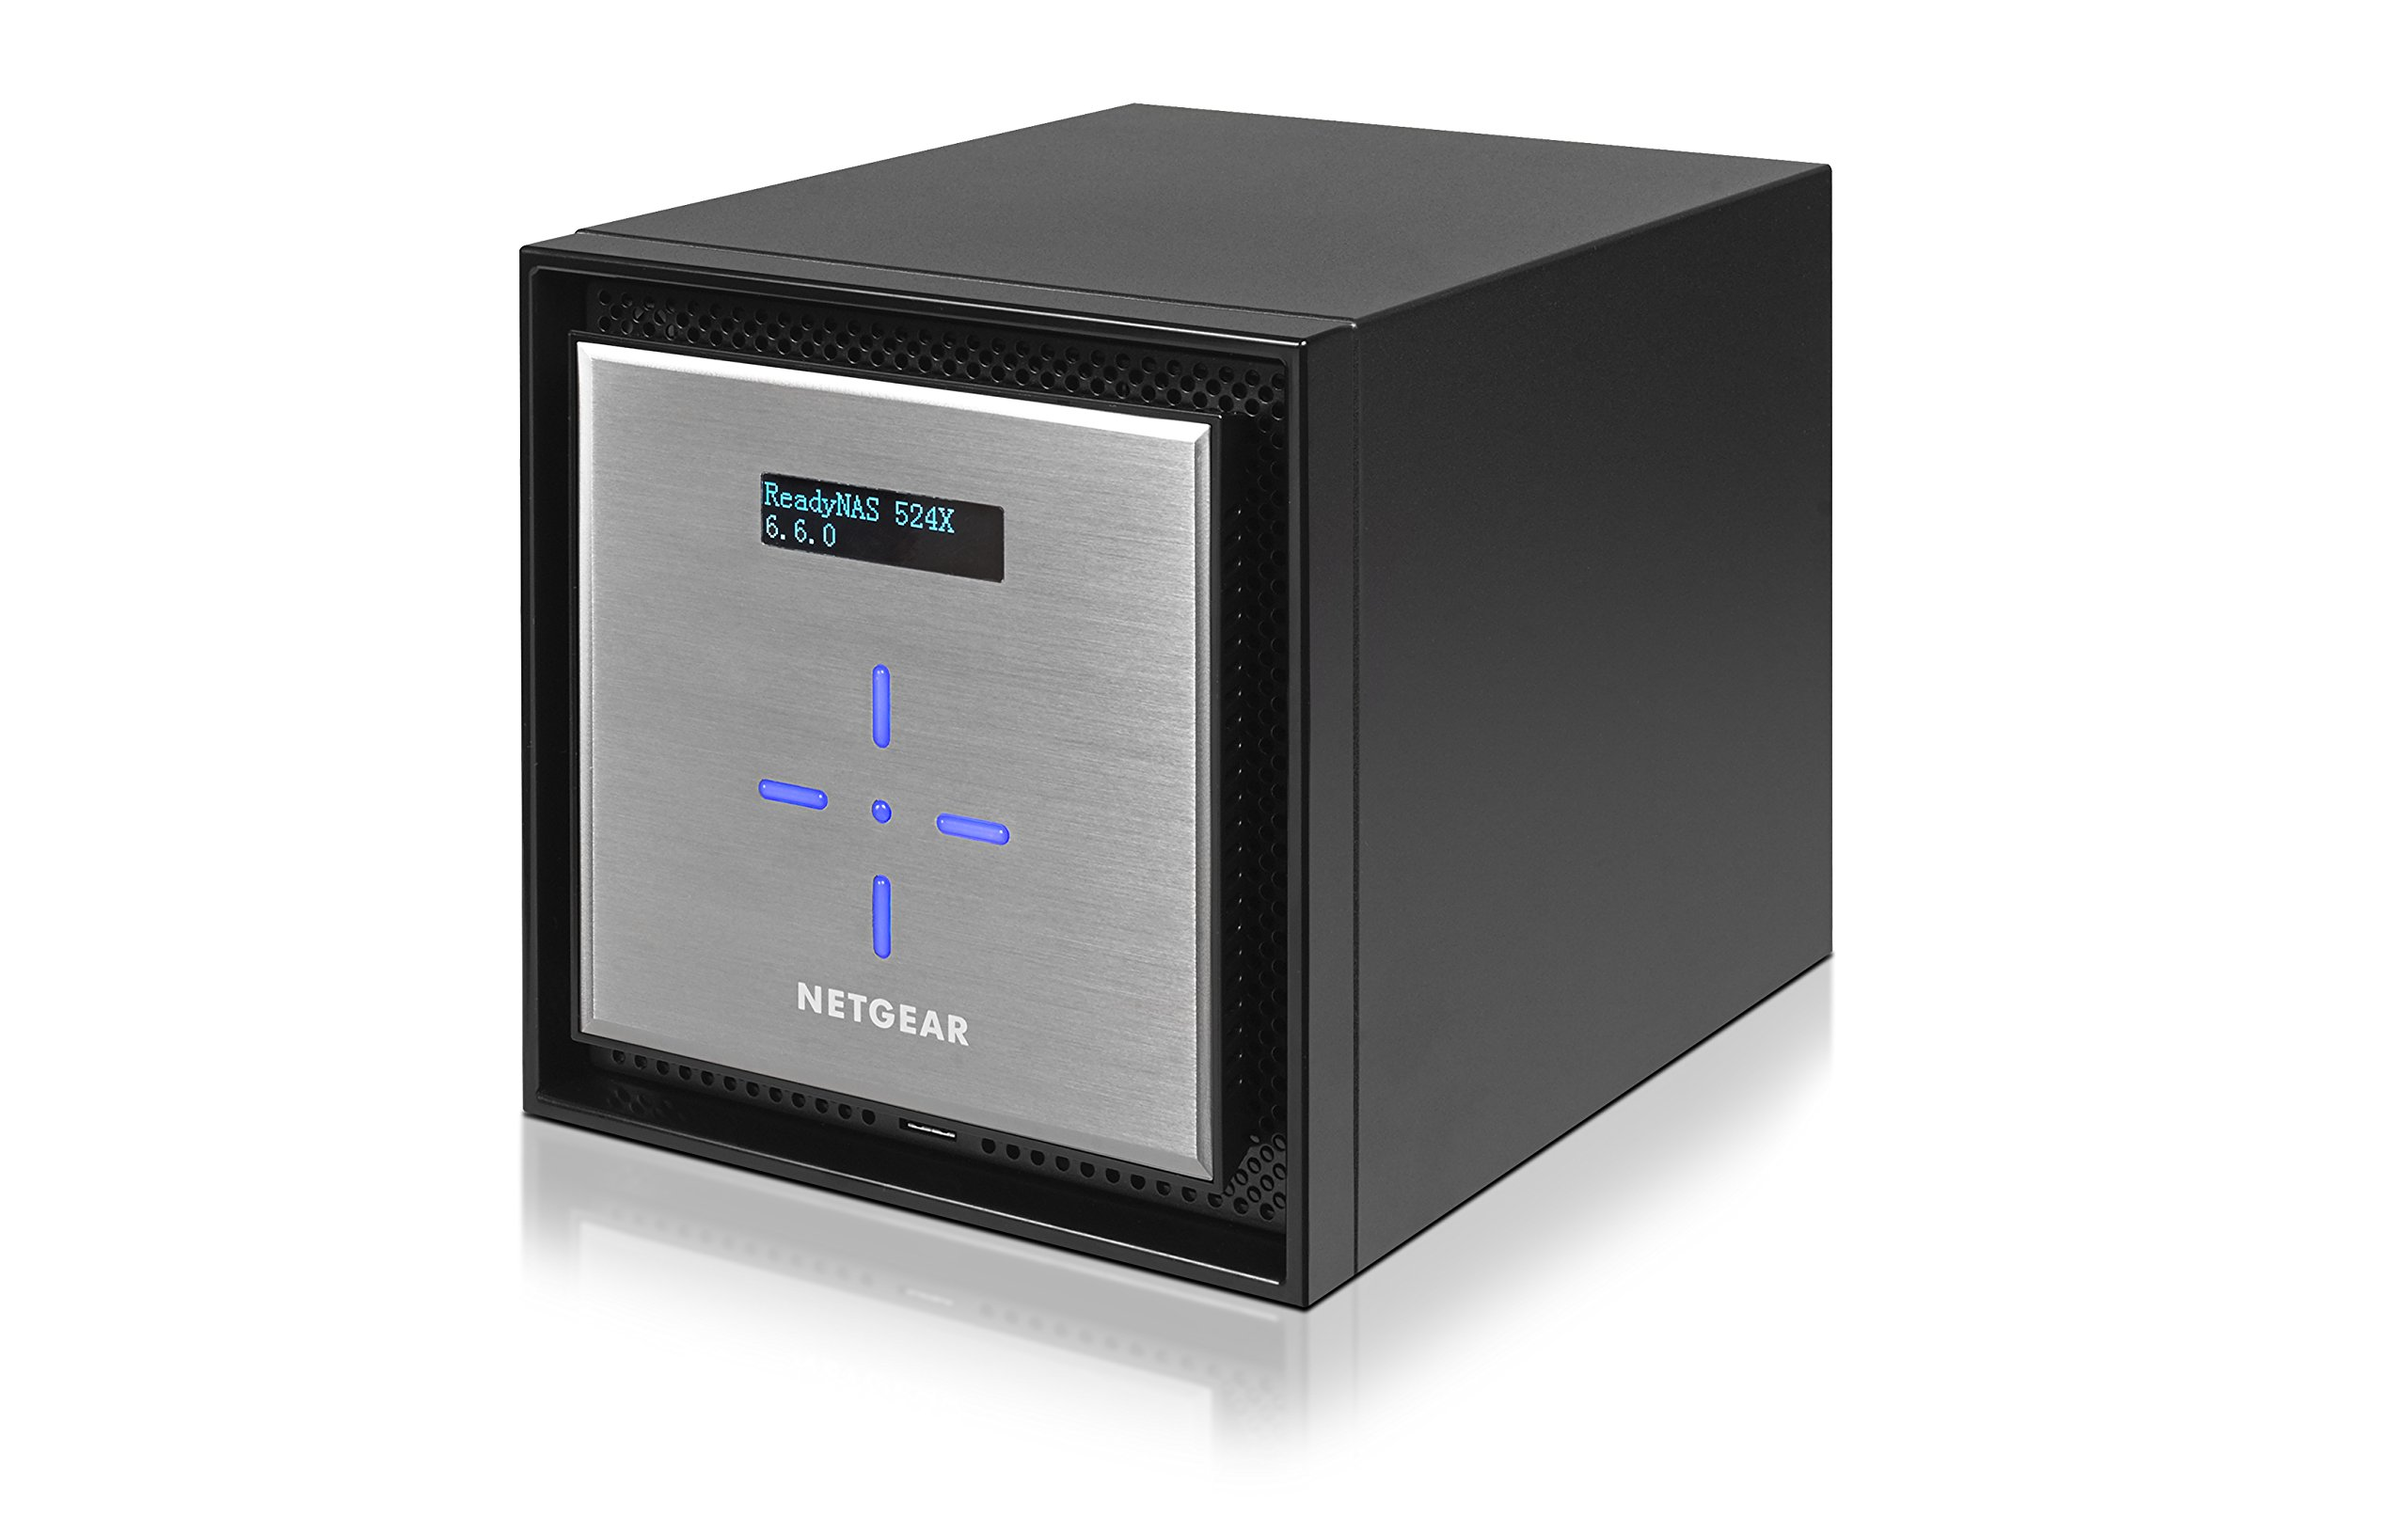 NETGEAR ReadyNAS RN524X00 4 Bay Diskless Premium Performance NAS, 40TB Capacity Network Attached Storage, Intel 2.2GHz Dual Core Processor, 4GB RAM 7 PREMIUM PERFORMANCE - Up to 20 gigabit per second data access, powered by a server processor 10G CONNECTIVITY - Utilize your 10G infrastructure for fast data sharing and backup throughput HIGH-PERFORMANCE - Get 2x faster business application processing with the latest 64-bit technology